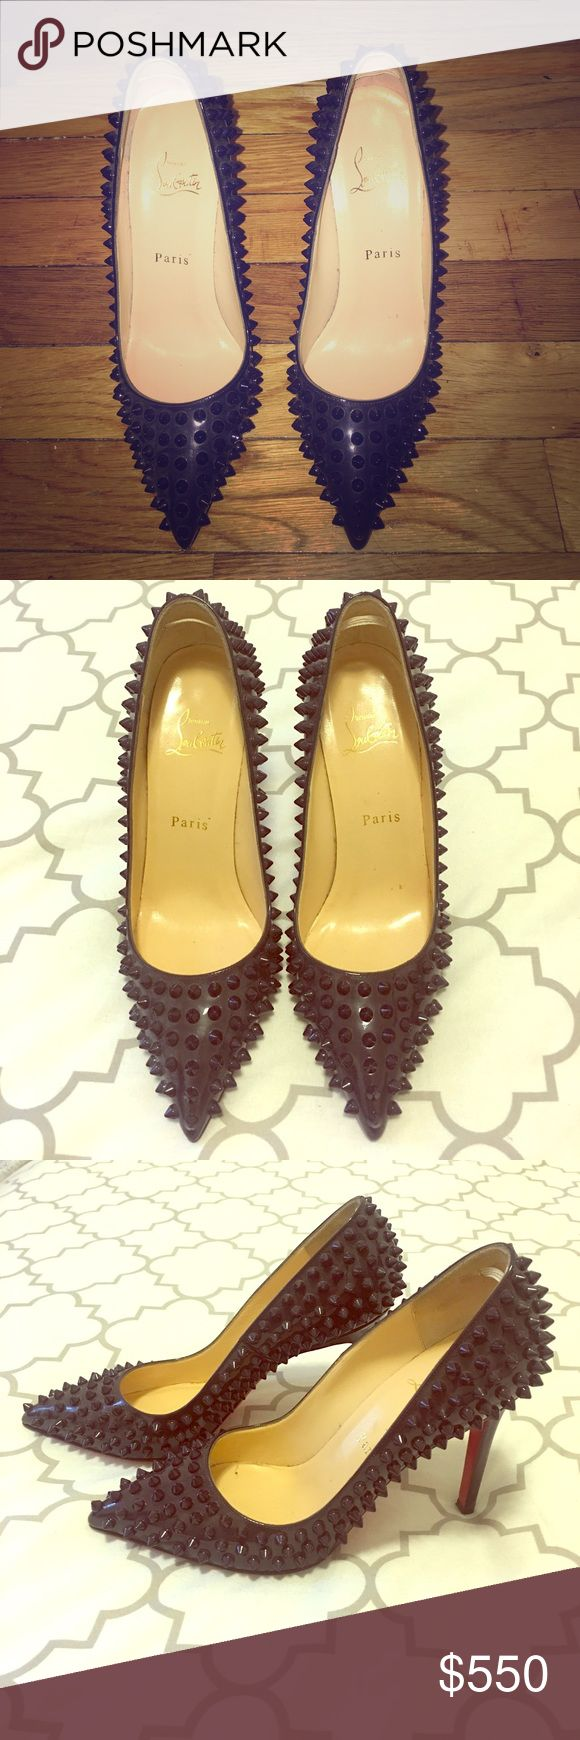 Christian Louboutin Pigalle Spiked Pumps Gently worn 100mm Christian Louboutin Dark Purple Pigalle Spiked Pumps. These shoes are bada**. Comment if you need more pics! Christian Louboutin Shoes Heels